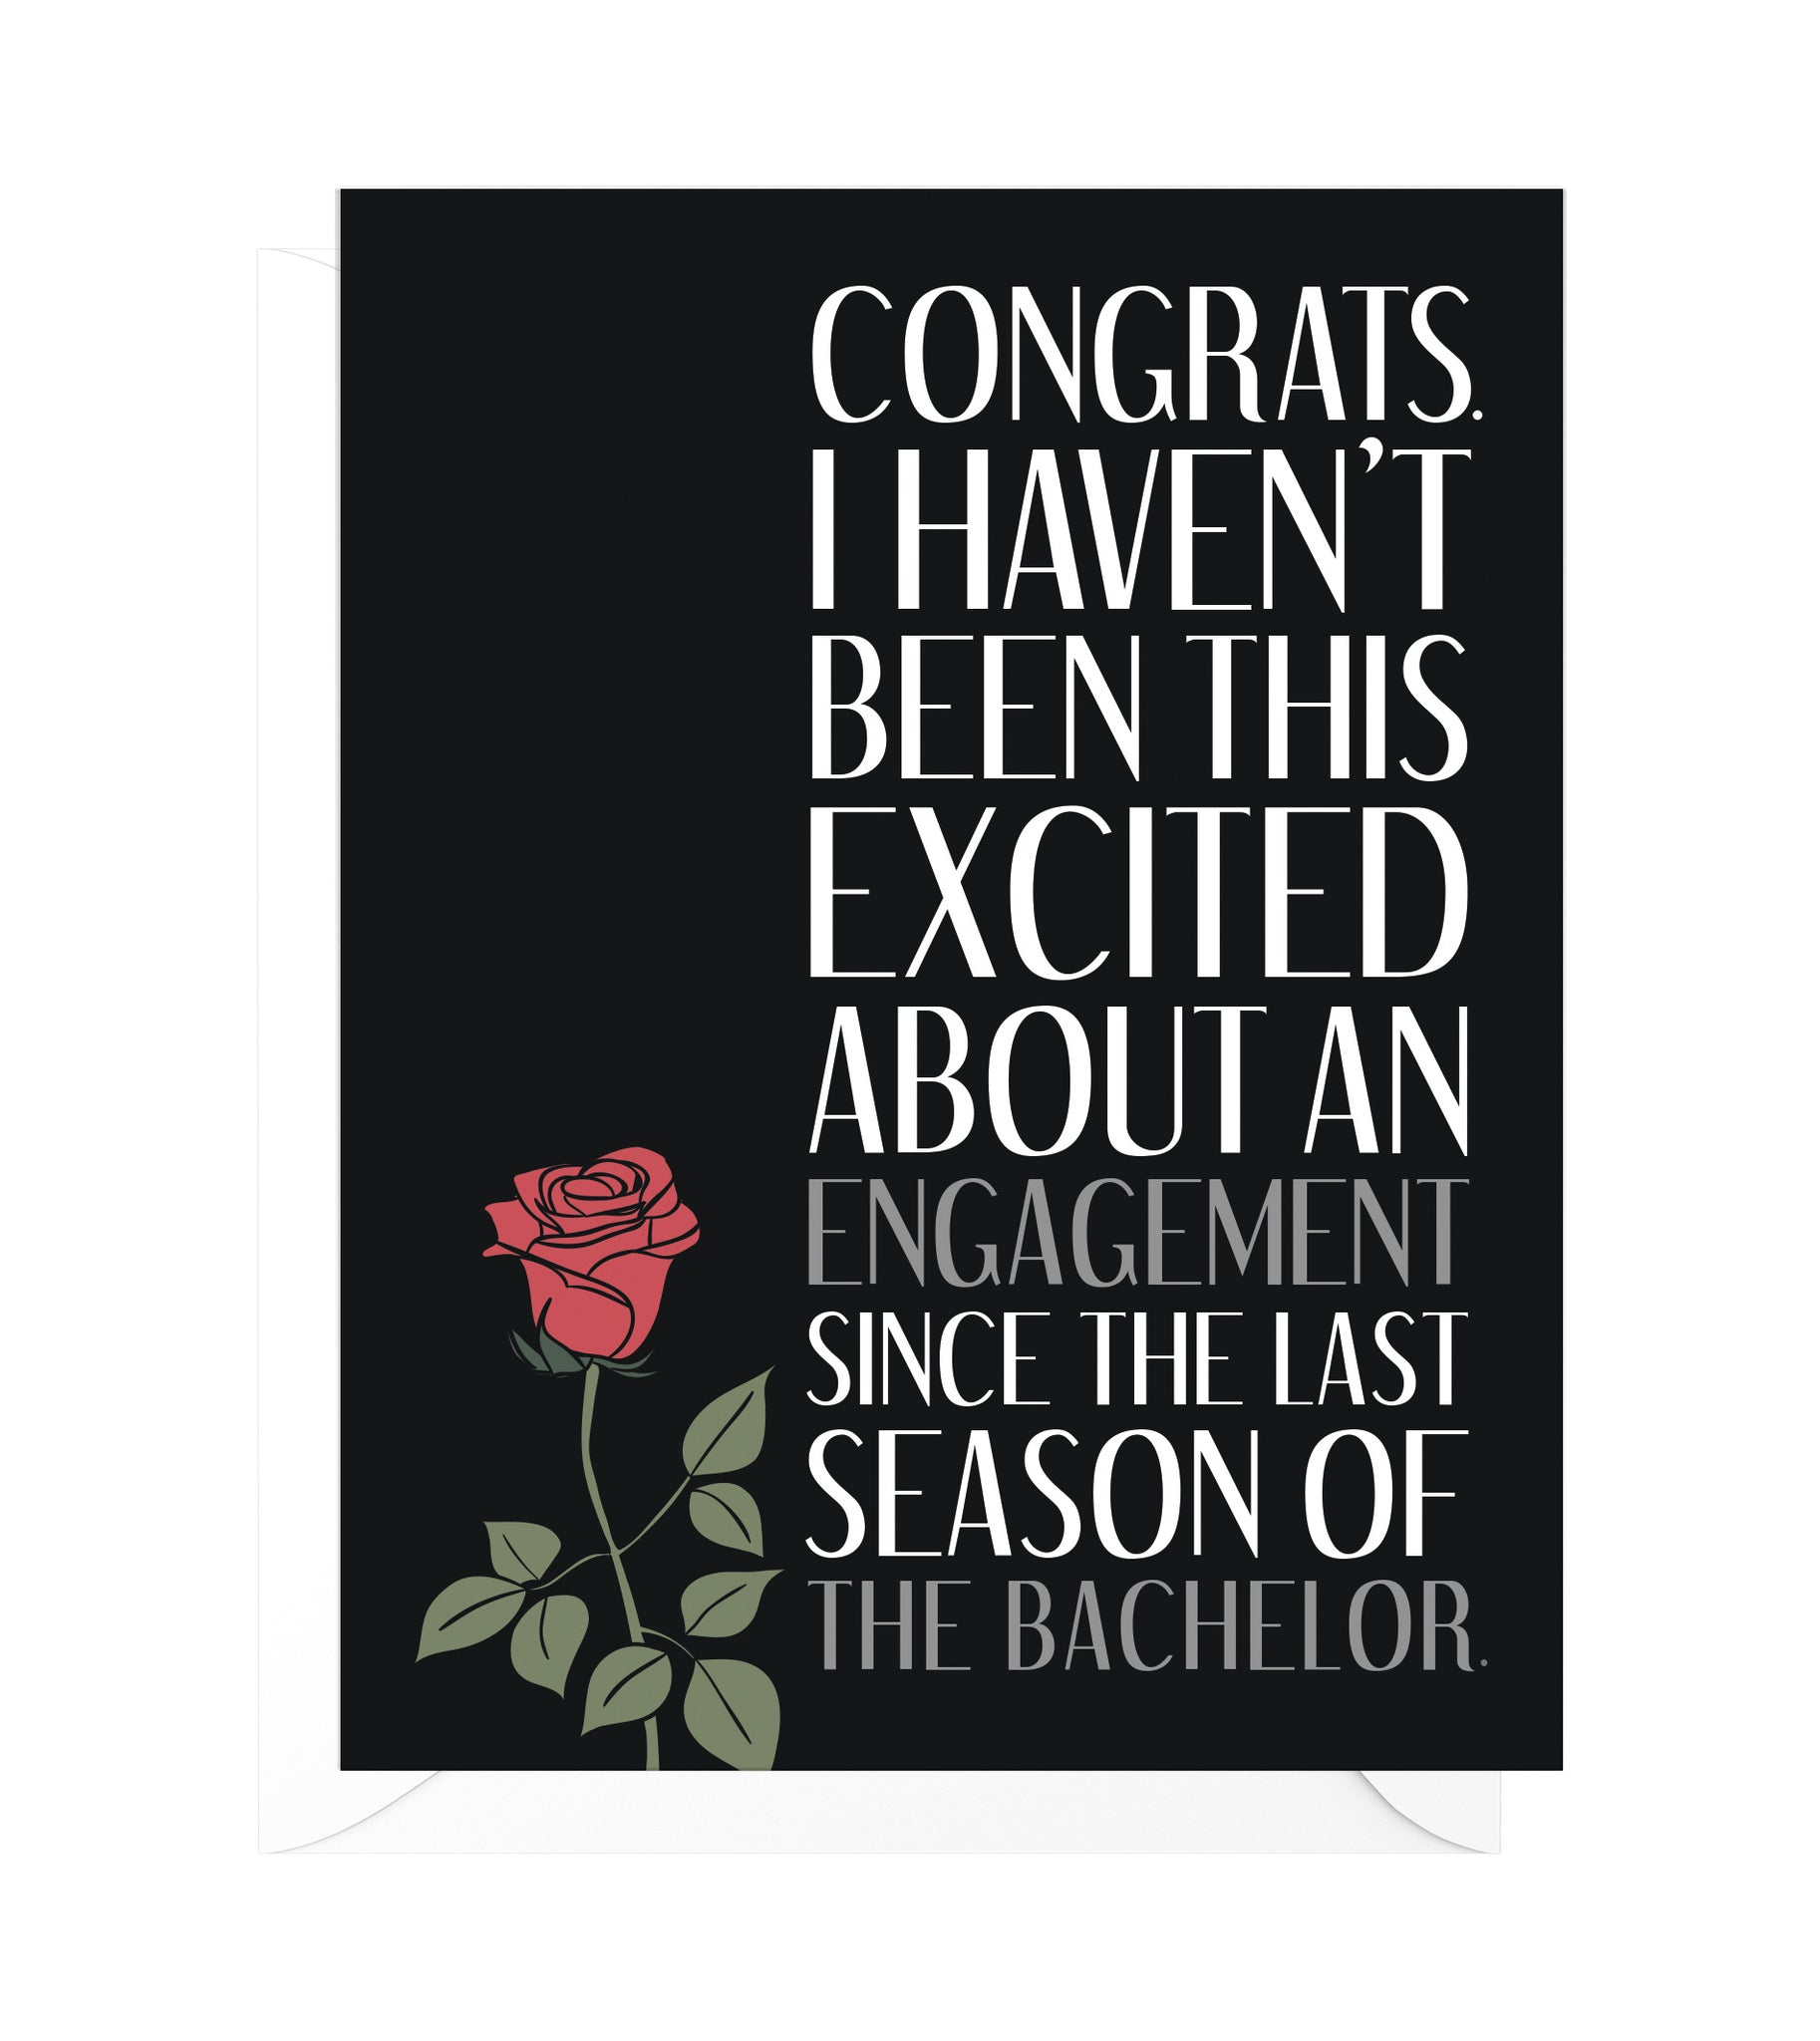 The Bachelor Funny Engagement Card